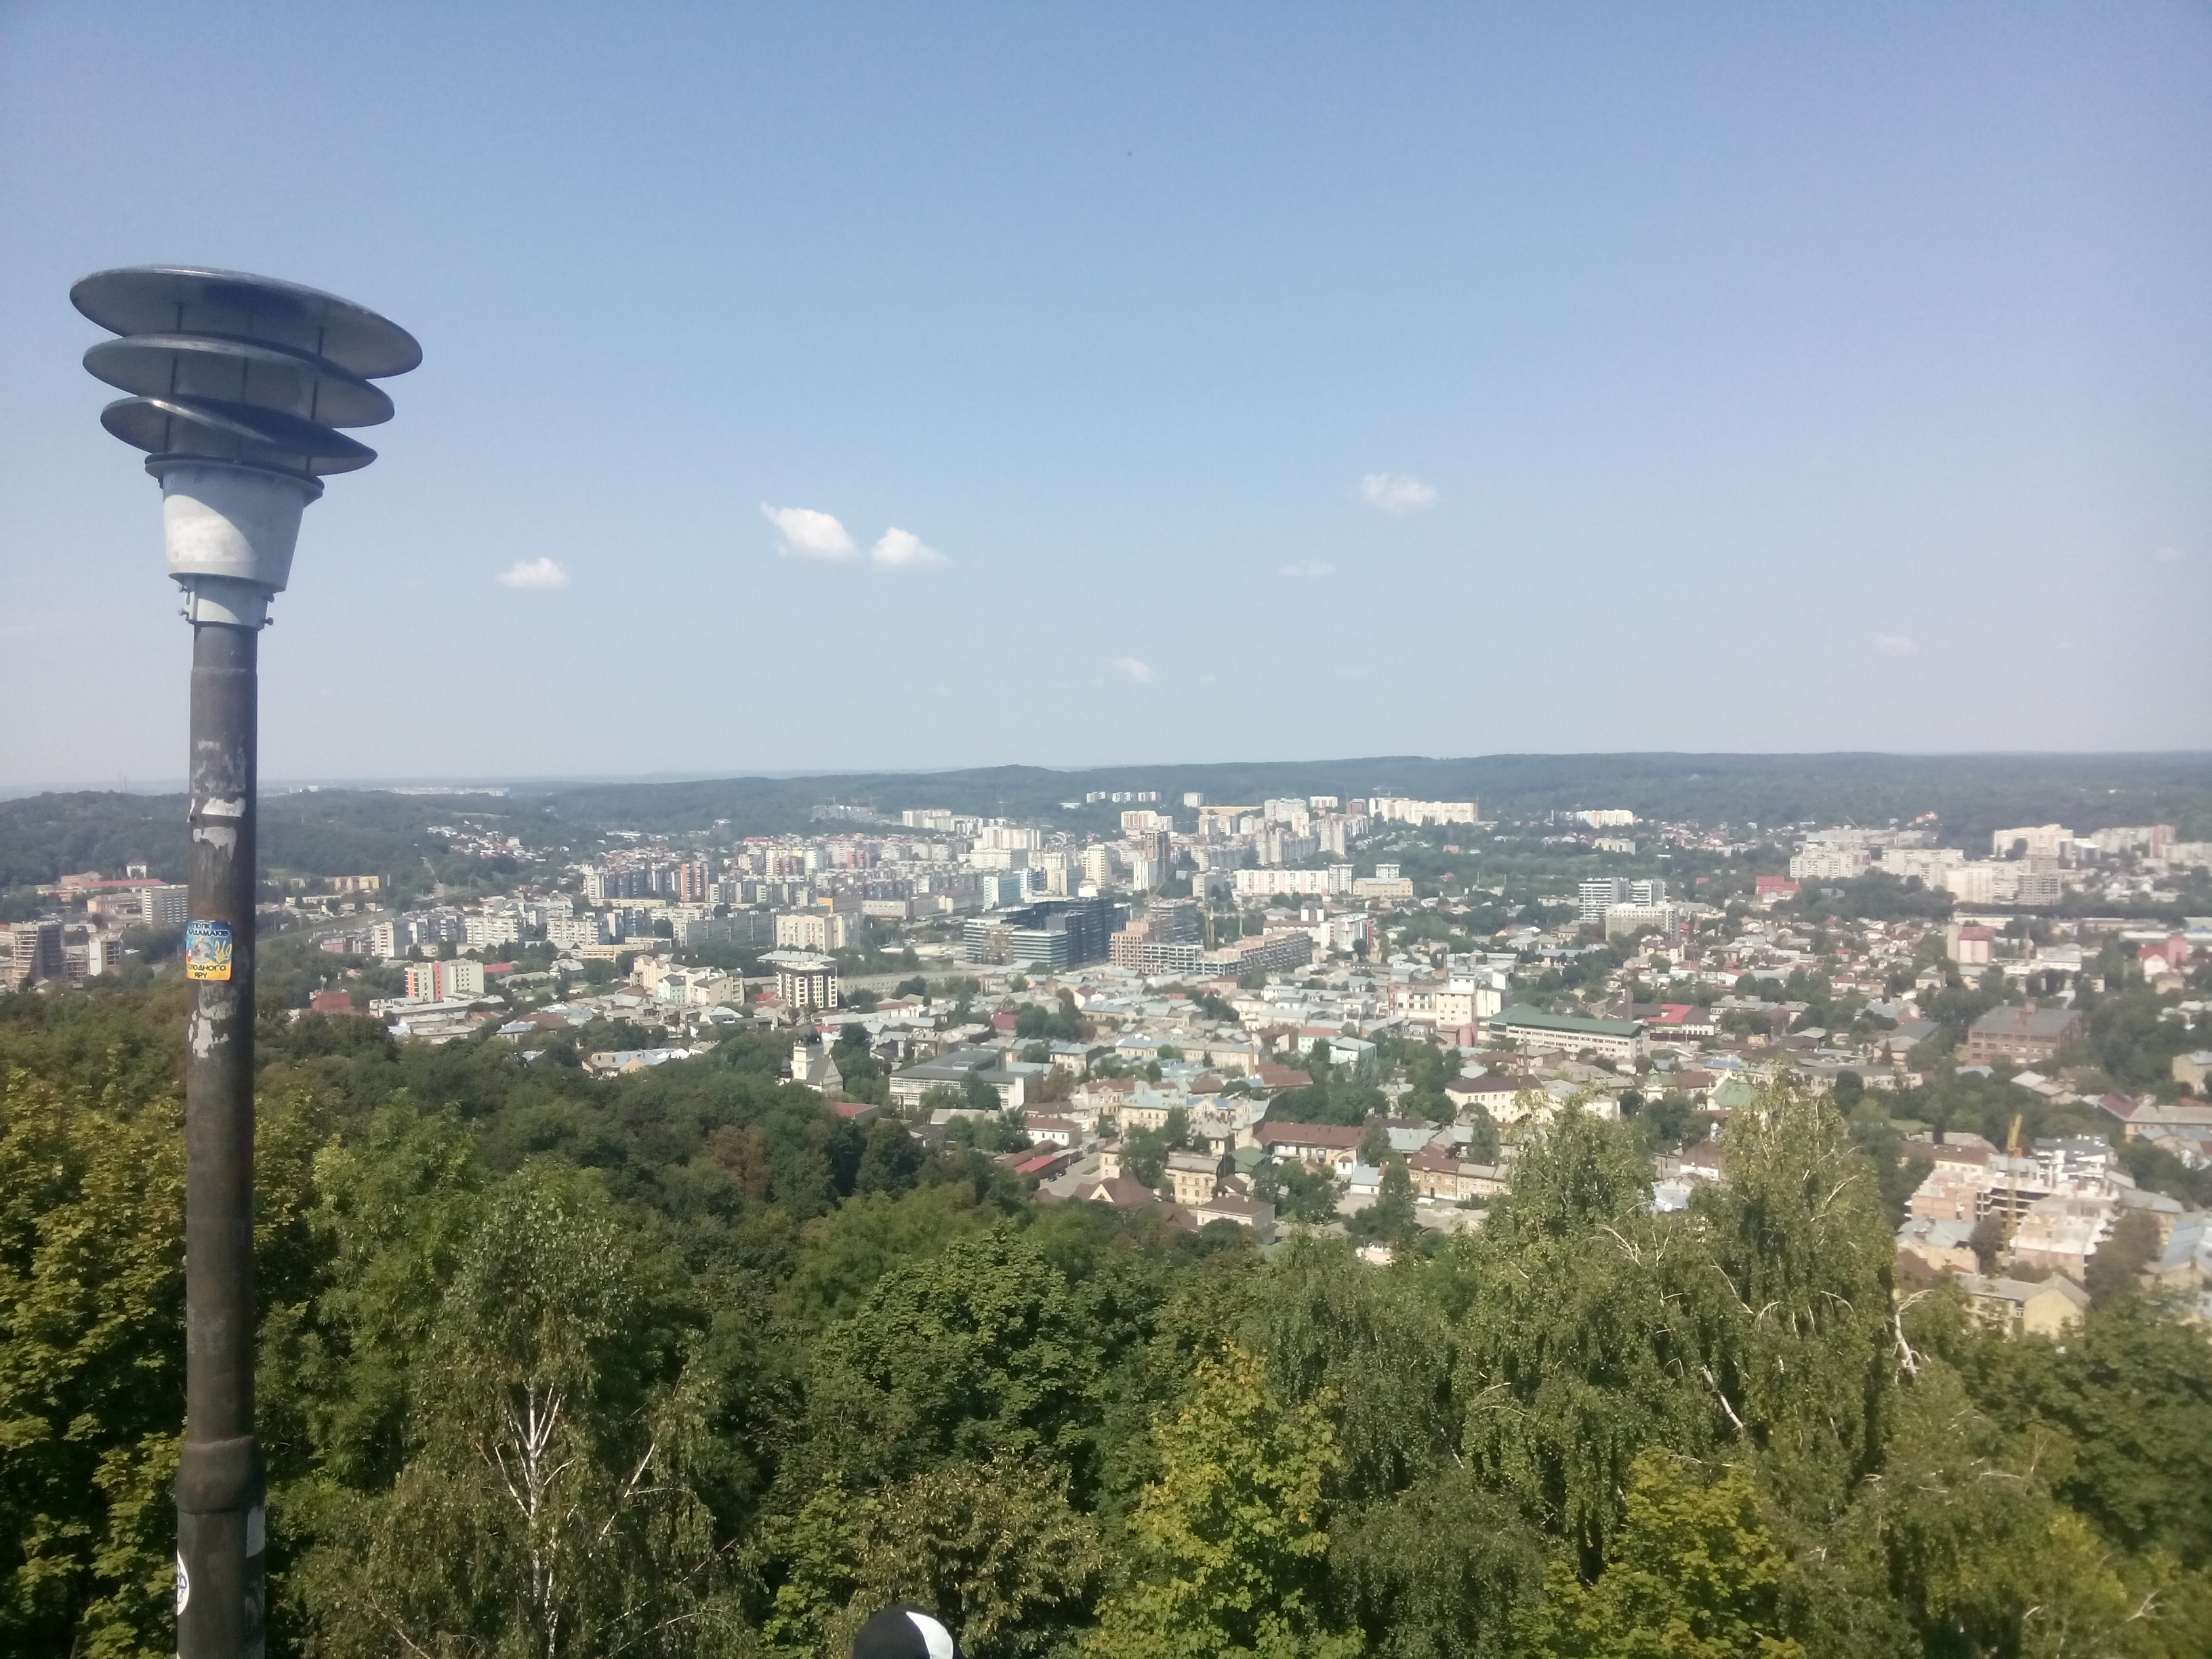 A lamp in the foreground of a view over Lviv from high up